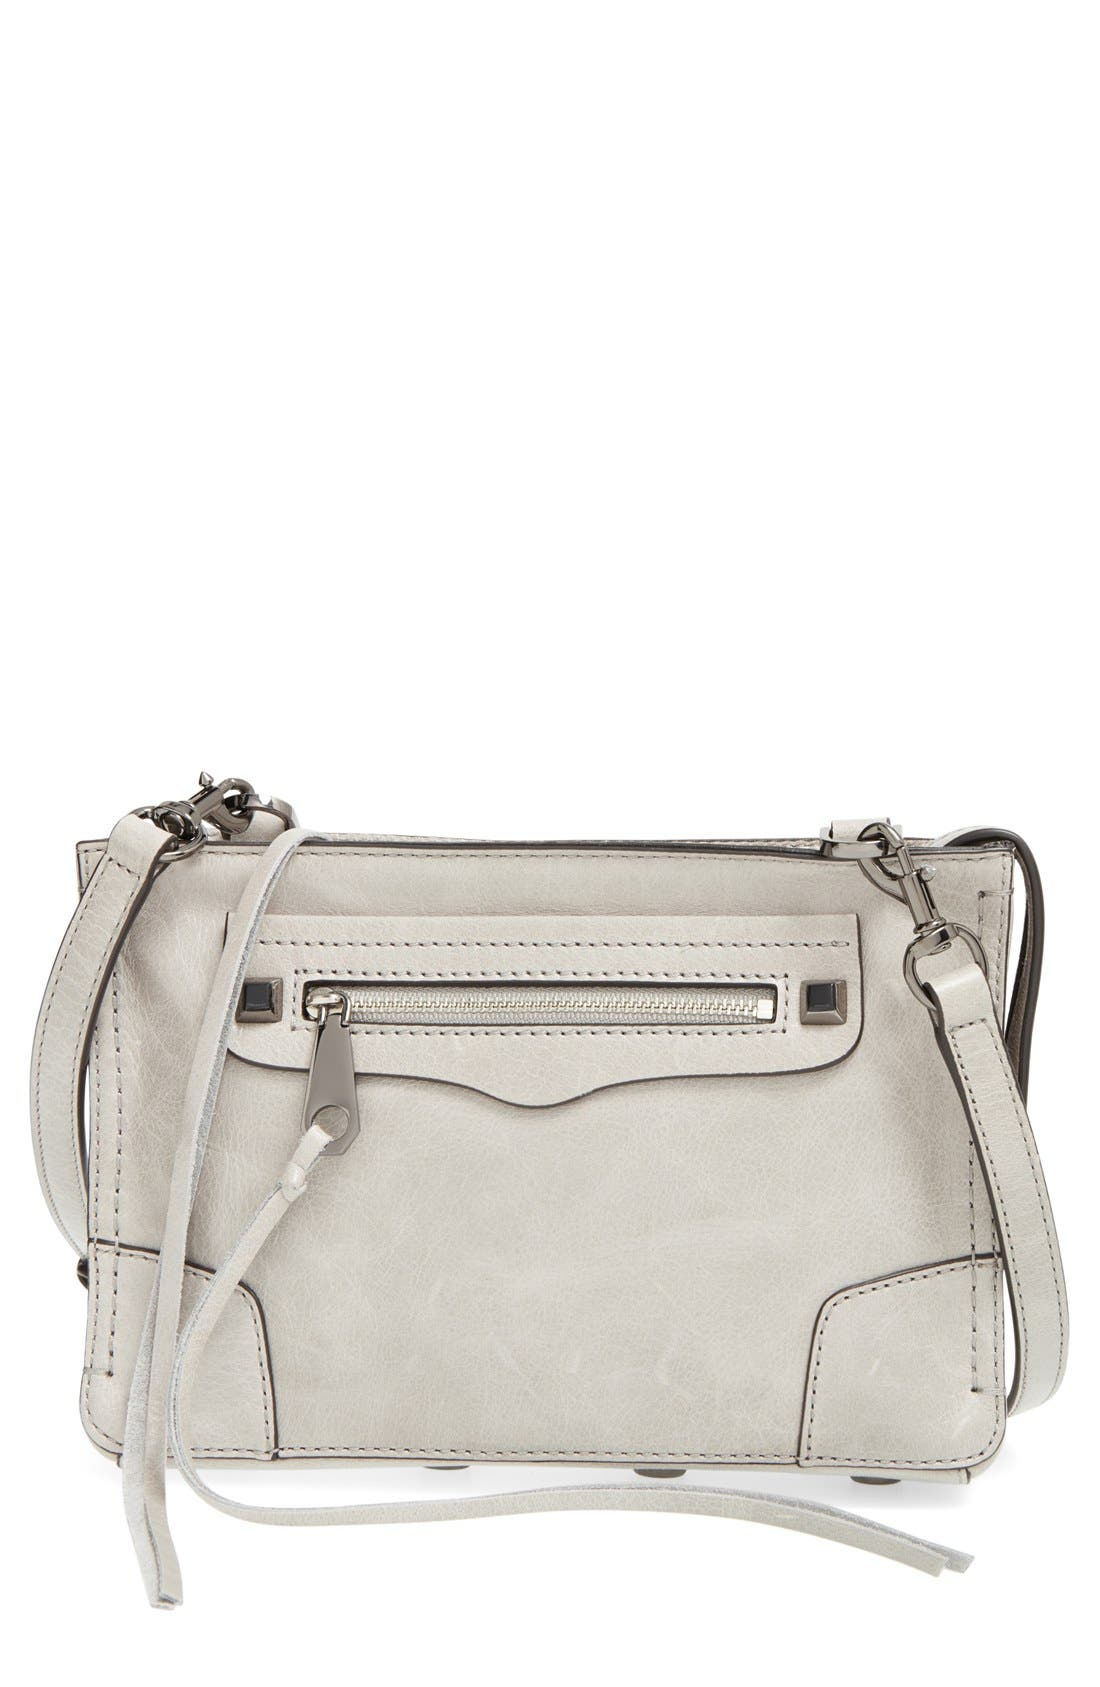 Main Image - Rebecca Minkoff 'Regan' Crossbody Bag